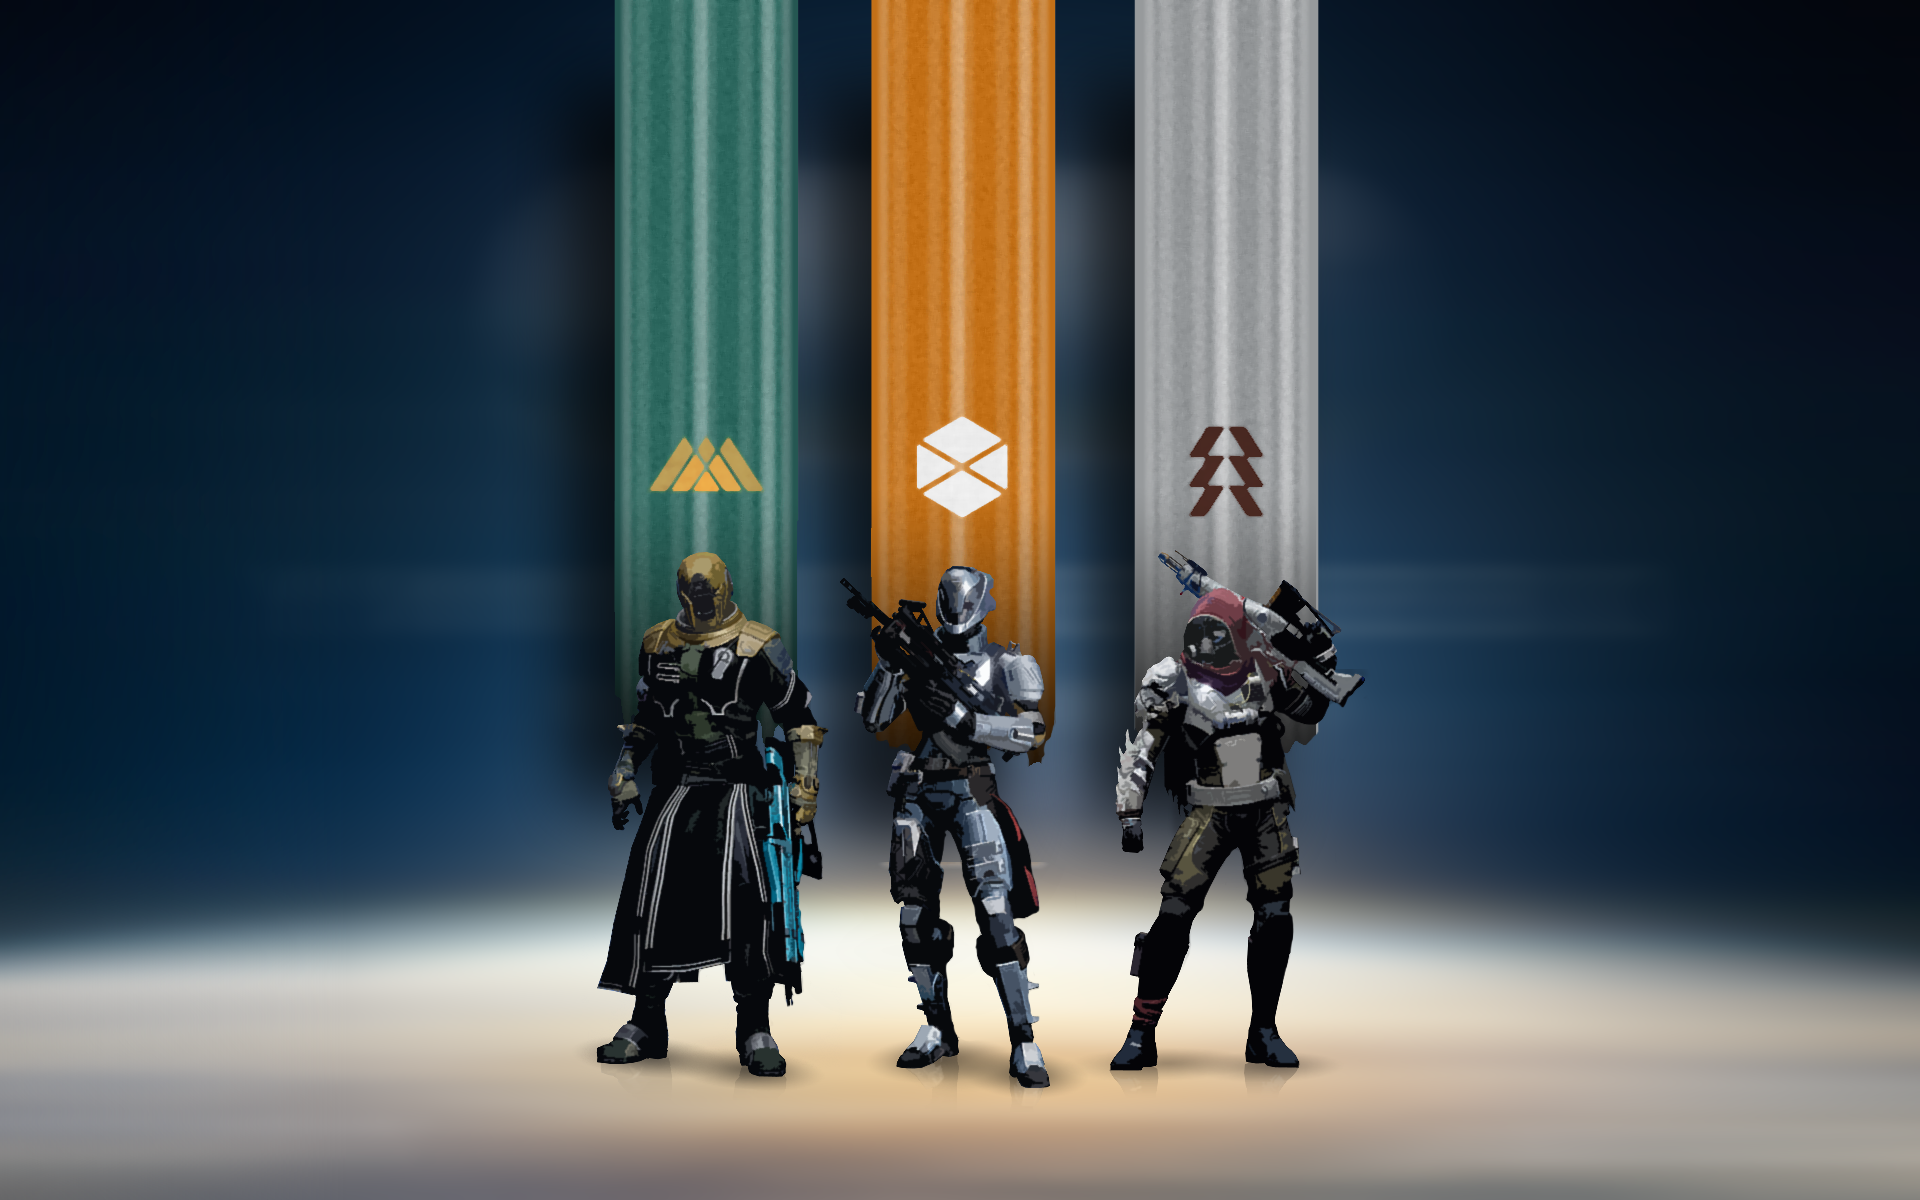 on November 11 2015 By Stephen Comments Off on Destiny Wallpaper HD 1920x1200